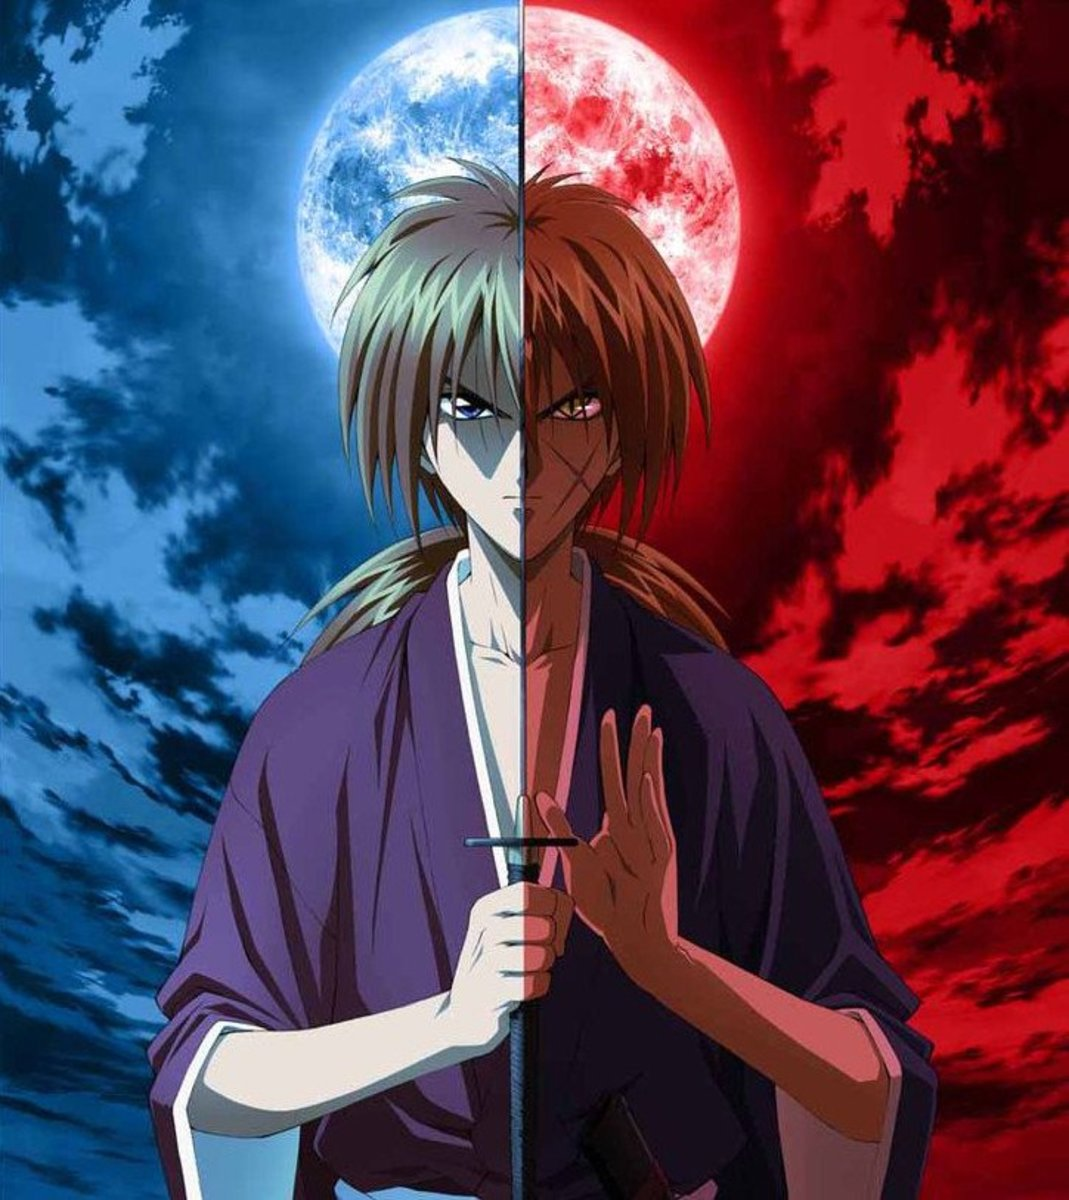 Kenshin and his Battosai form